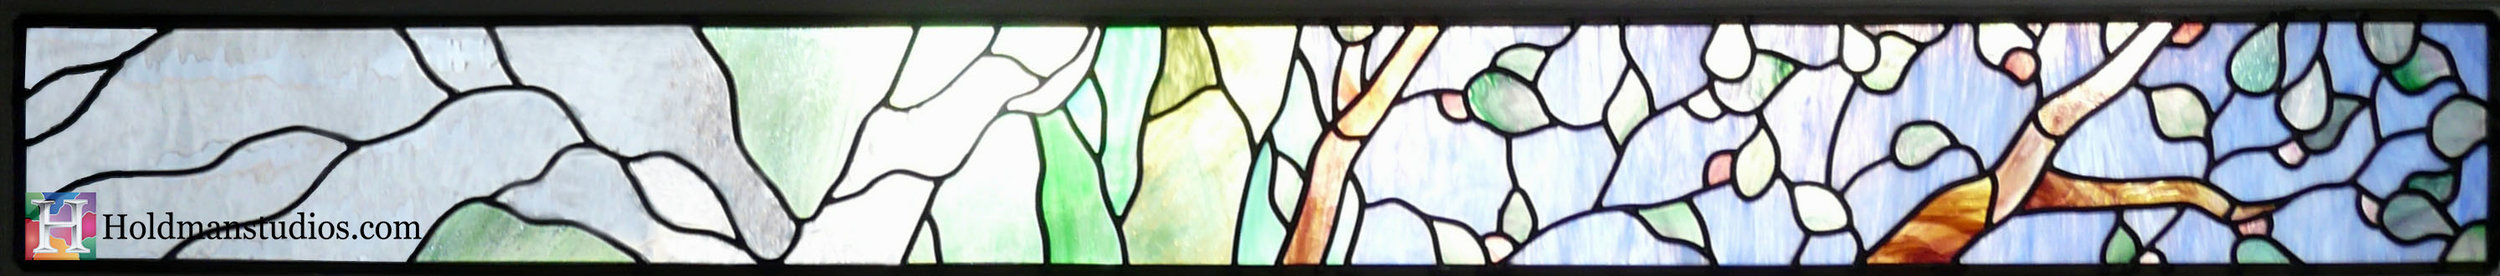 Holdman-Studios-Stained-Glass-Sidelight-Window-Apen-Tree-River.jpg